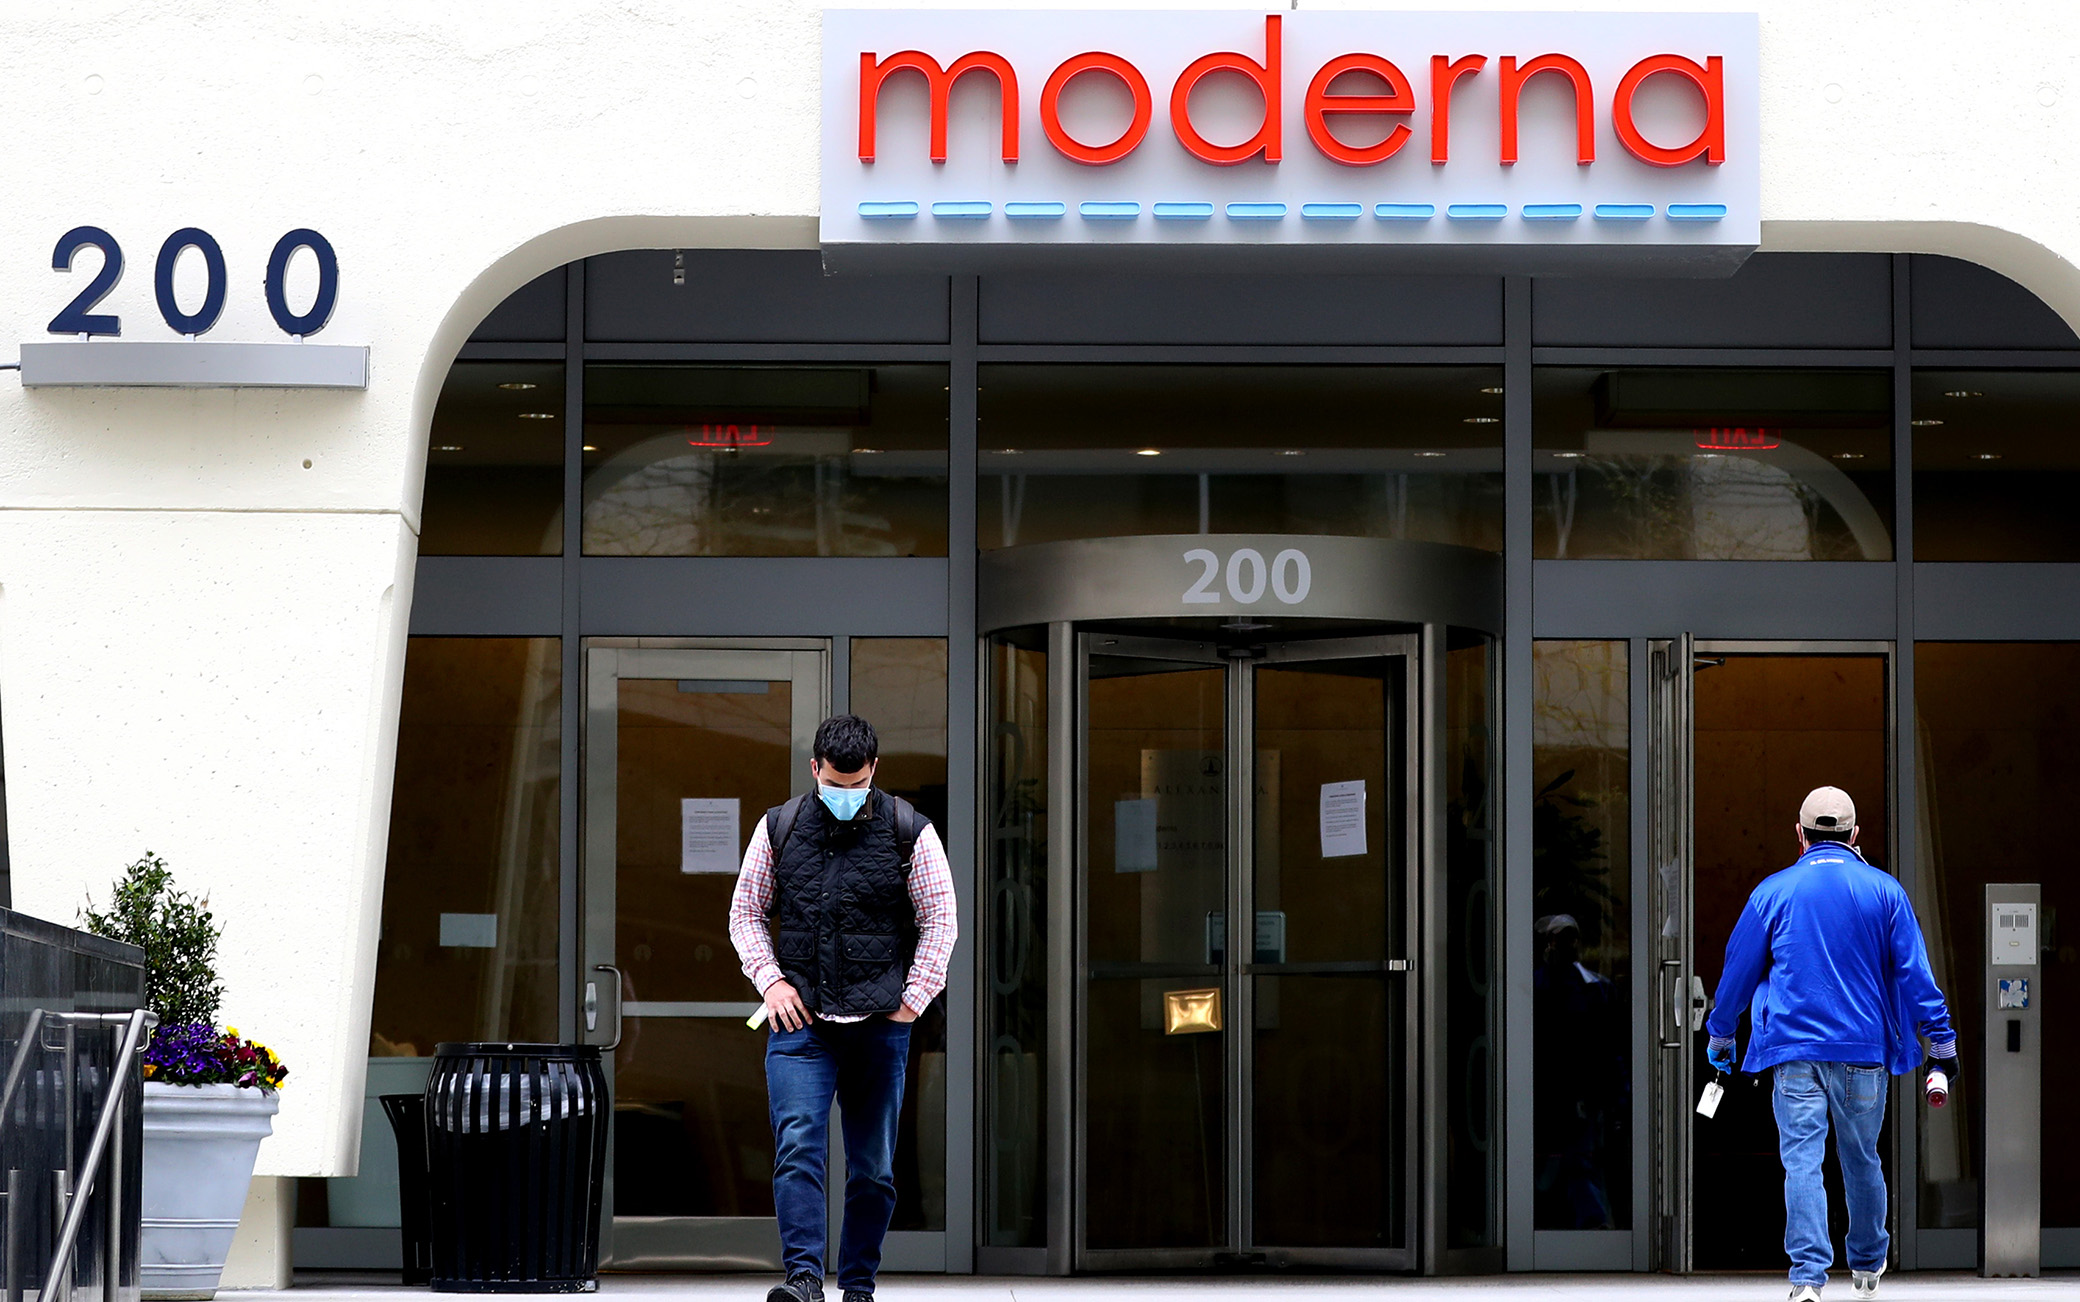 CAMBRIDGE, MASSACHUSETTS - MAY 08: A view of Moderna headquarters on May 08, 2020 in Cambridge, Massachusetts. Moderna was given FDA approval to continue to phase 2 of Coronavirus (COVID-19) vaccine trials with 600 participants.  (Photo by Maddie Meyer/Getty Images)